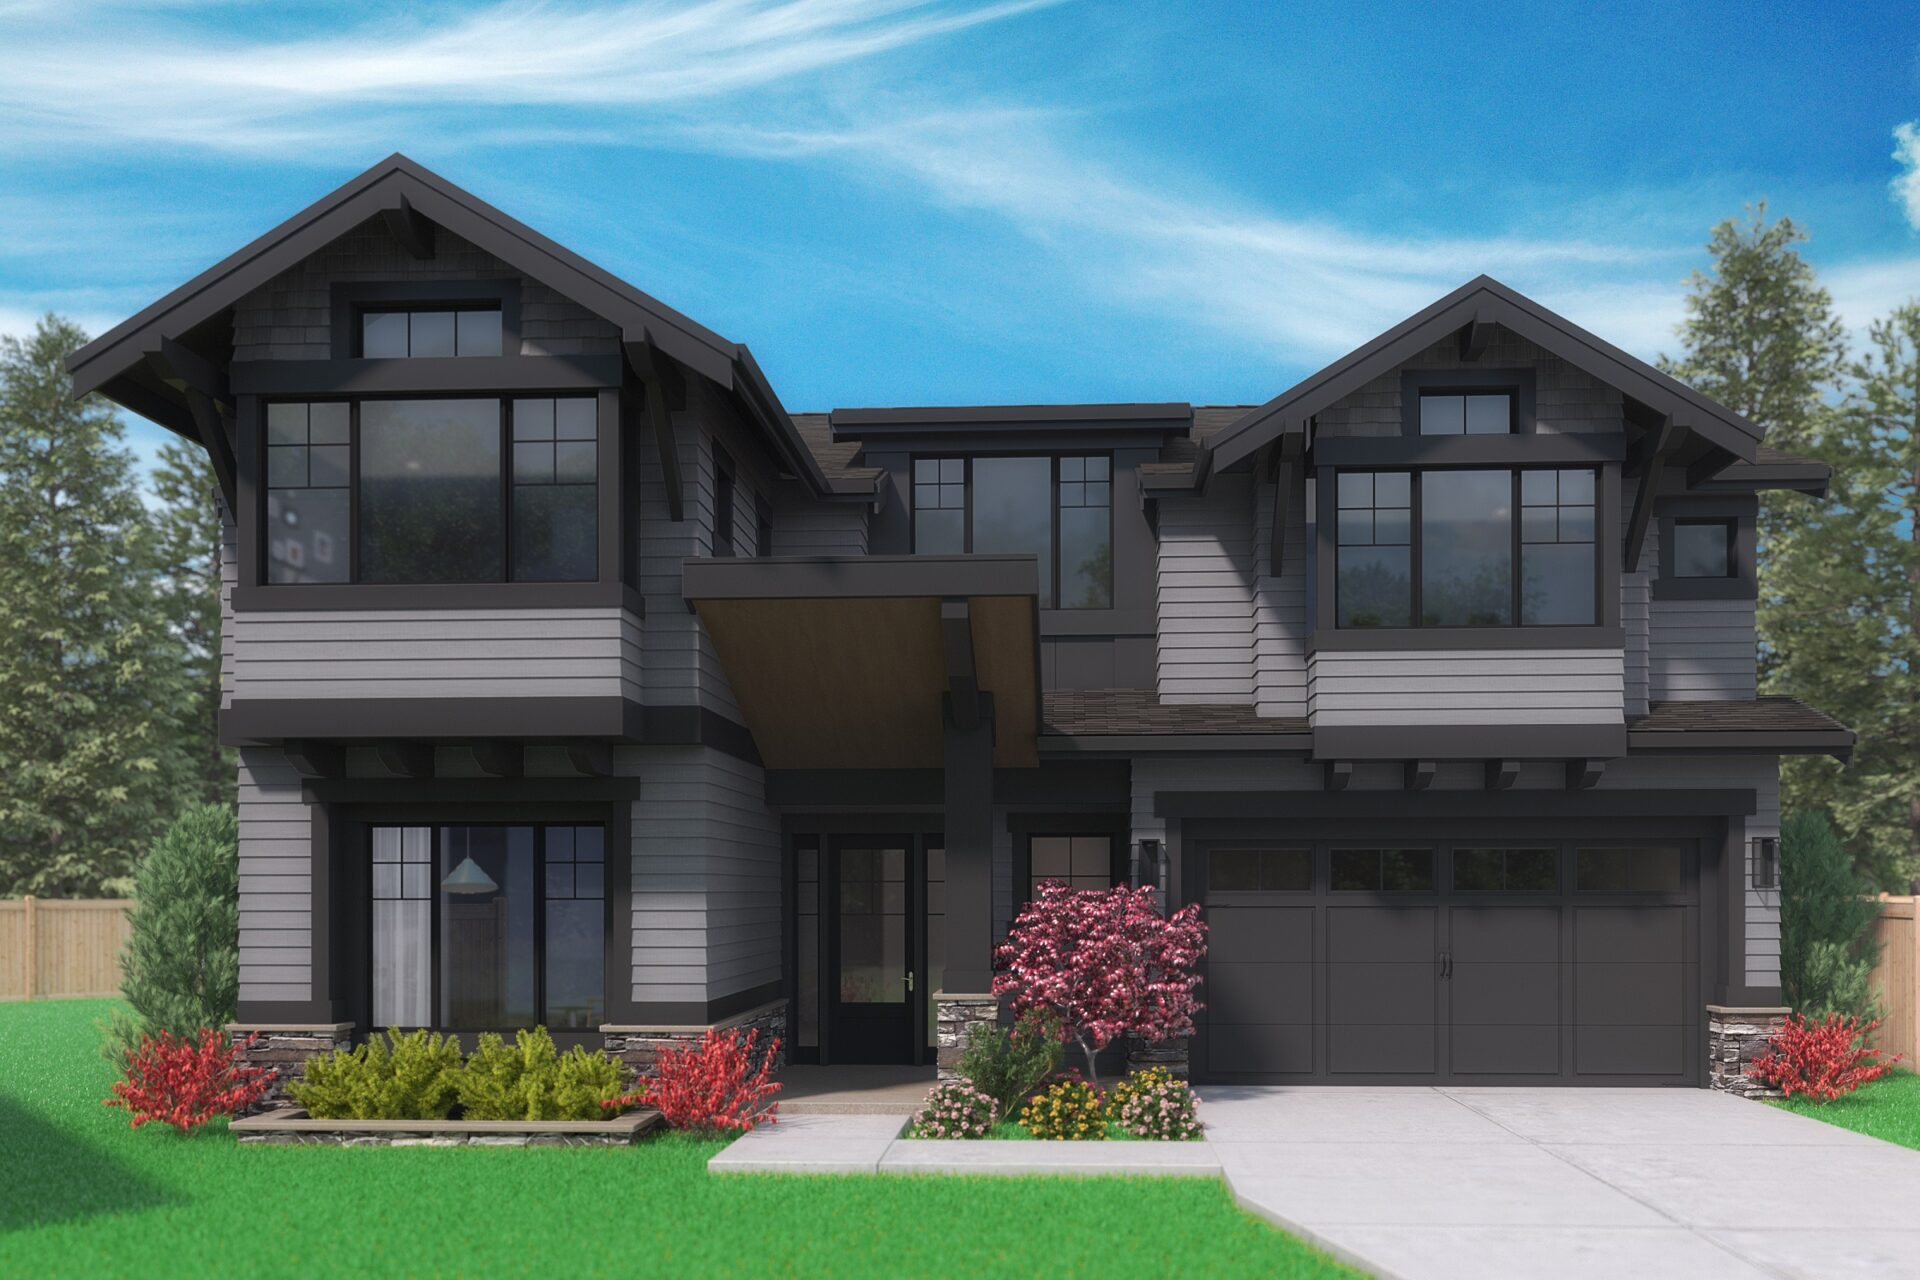 View our new luxury home construction on12845 NE 108th Pl, in Kirkland, WA from MN Custom Home